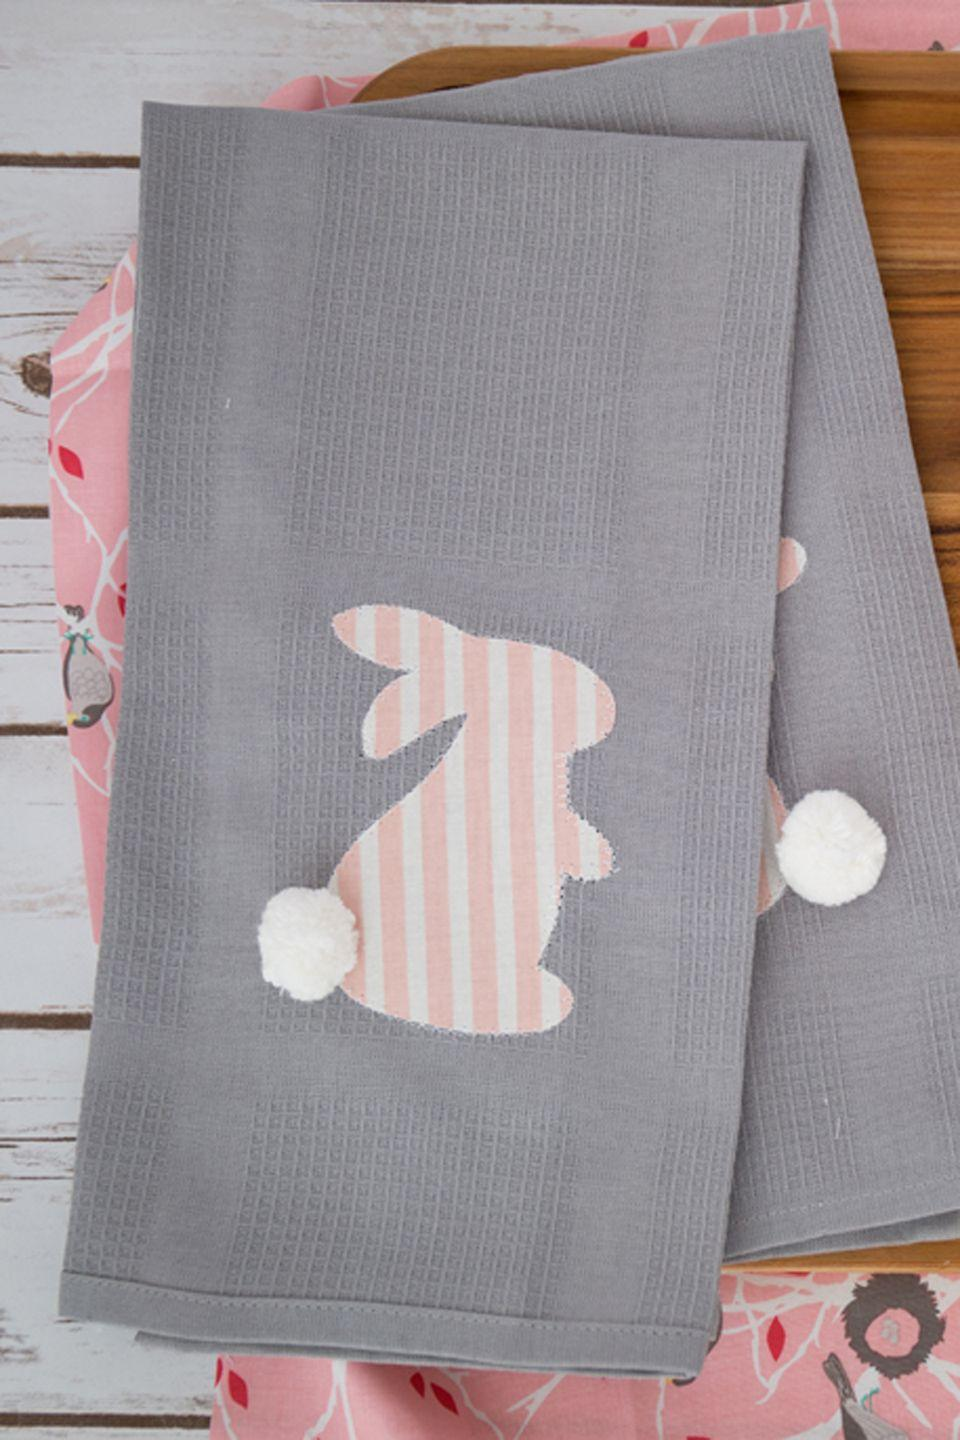 "<p>Give your napkins, dish towels, or table cloth a touch of Easter spirit with this iron-on little animal.</p><p><strong>Get the tutorial at <a href=""http://www.simplesimonandco.com/2015/03/diy-easter-kitchen-linens.html/"" rel=""nofollow noopener"" target=""_blank"" data-ylk=""slk:Simple Simon & Company"" class=""link rapid-noclick-resp"">Simple Simon & Company</a>.</strong></p><p><a class=""link rapid-noclick-resp"" href=""https://www.amazon.com/Richland-Textiles-Cotton-Seersucker-Stripe/dp/B00PYZ2VK8/ref=sr_1_3?tag=syn-yahoo-20&ascsubtag=%5Bartid%7C10050.g.1652%5Bsrc%7Cyahoo-us"" rel=""nofollow noopener"" target=""_blank"" data-ylk=""slk:SHOP PINK AND WHITE FABRIC"">SHOP PINK AND WHITE FABRIC</a></p>"